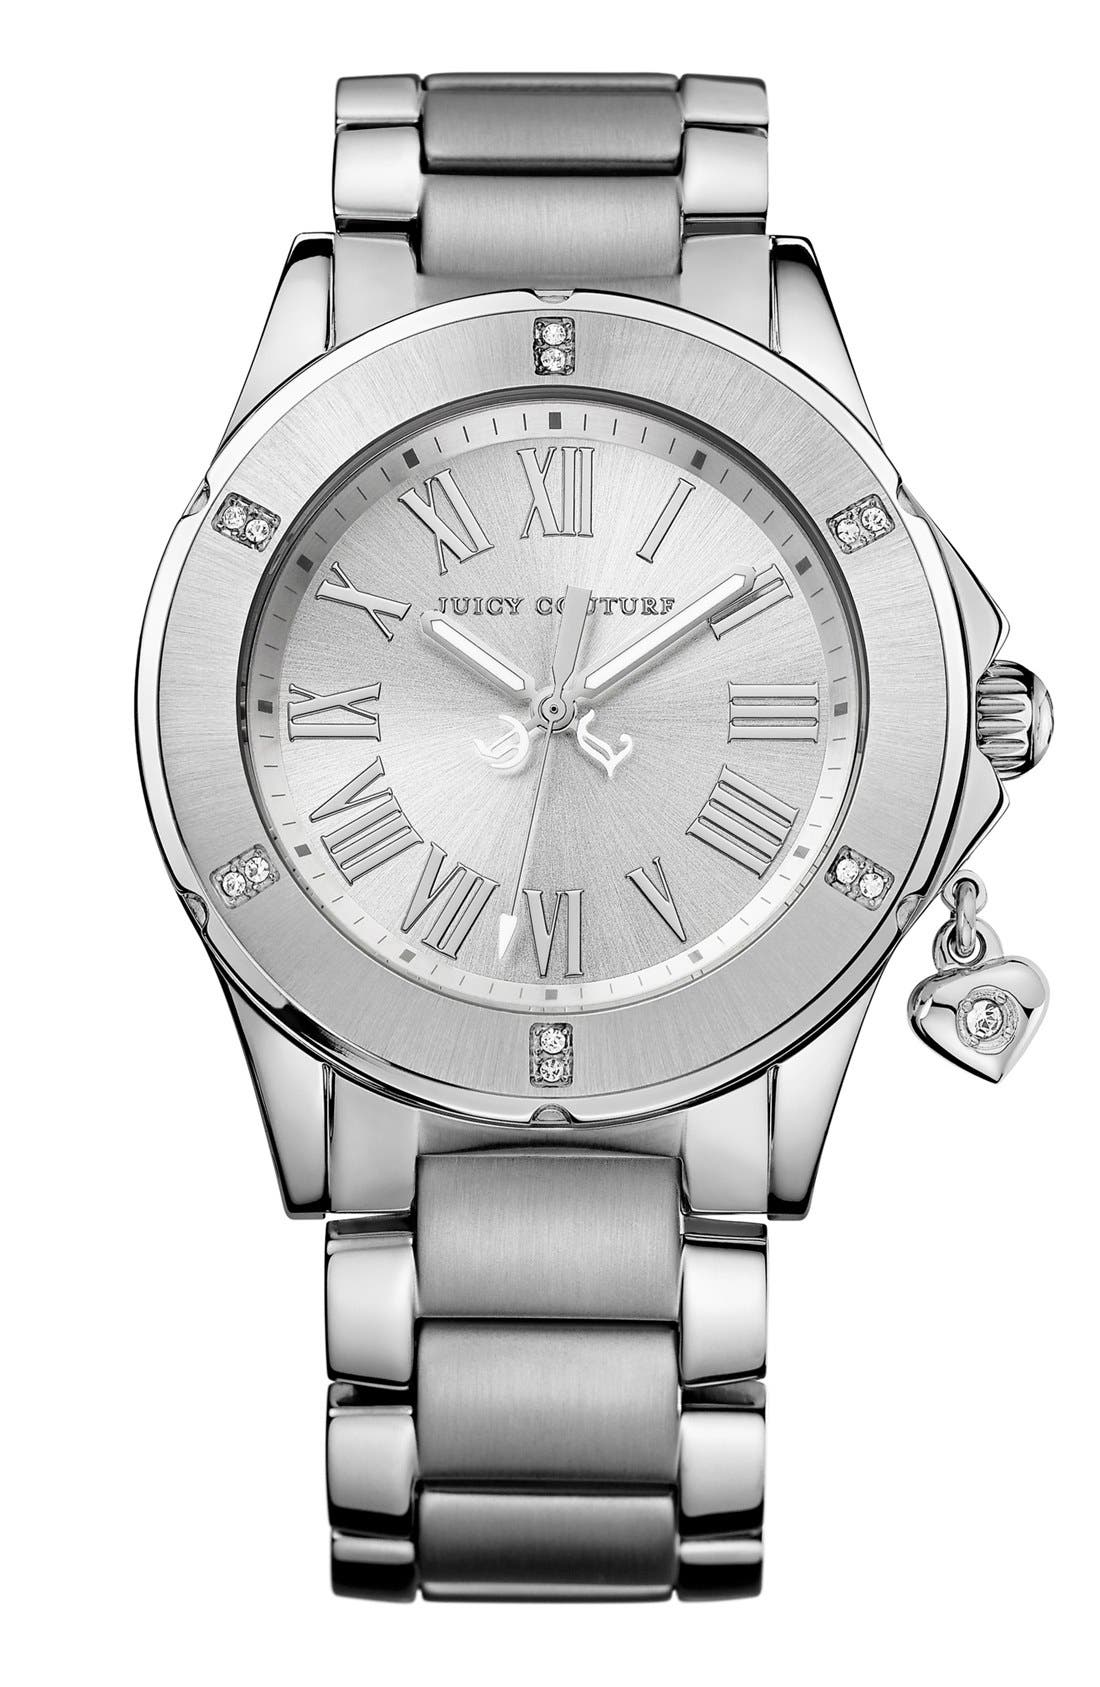 Main Image - Juicy Couture 'Rich Girl' Round Dial Bracelet Watch, 41mm